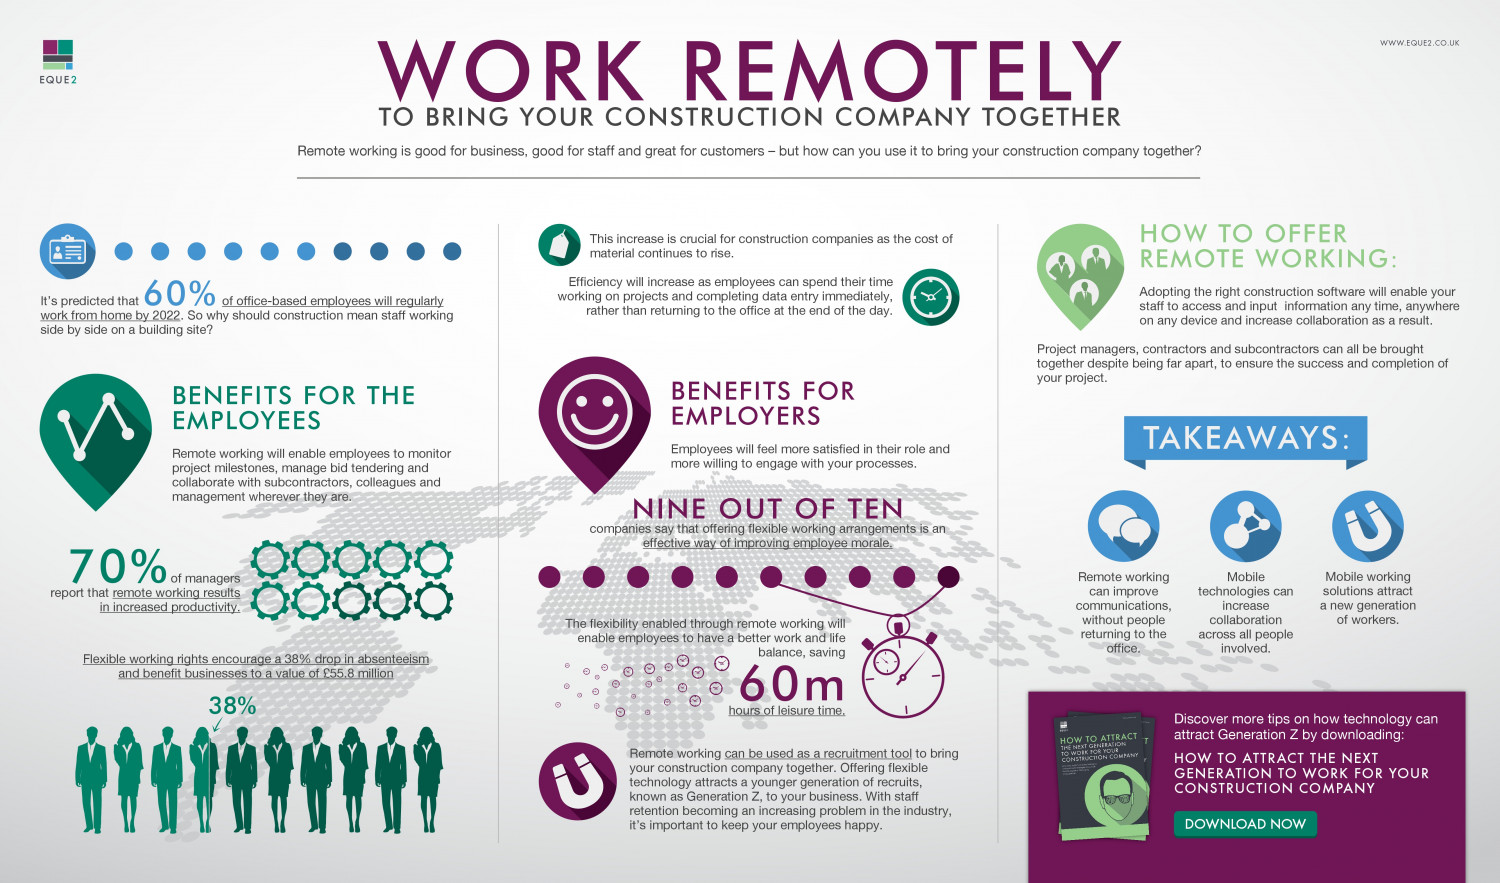 Work Remotely to Bring Your Construction Company Together Infographic